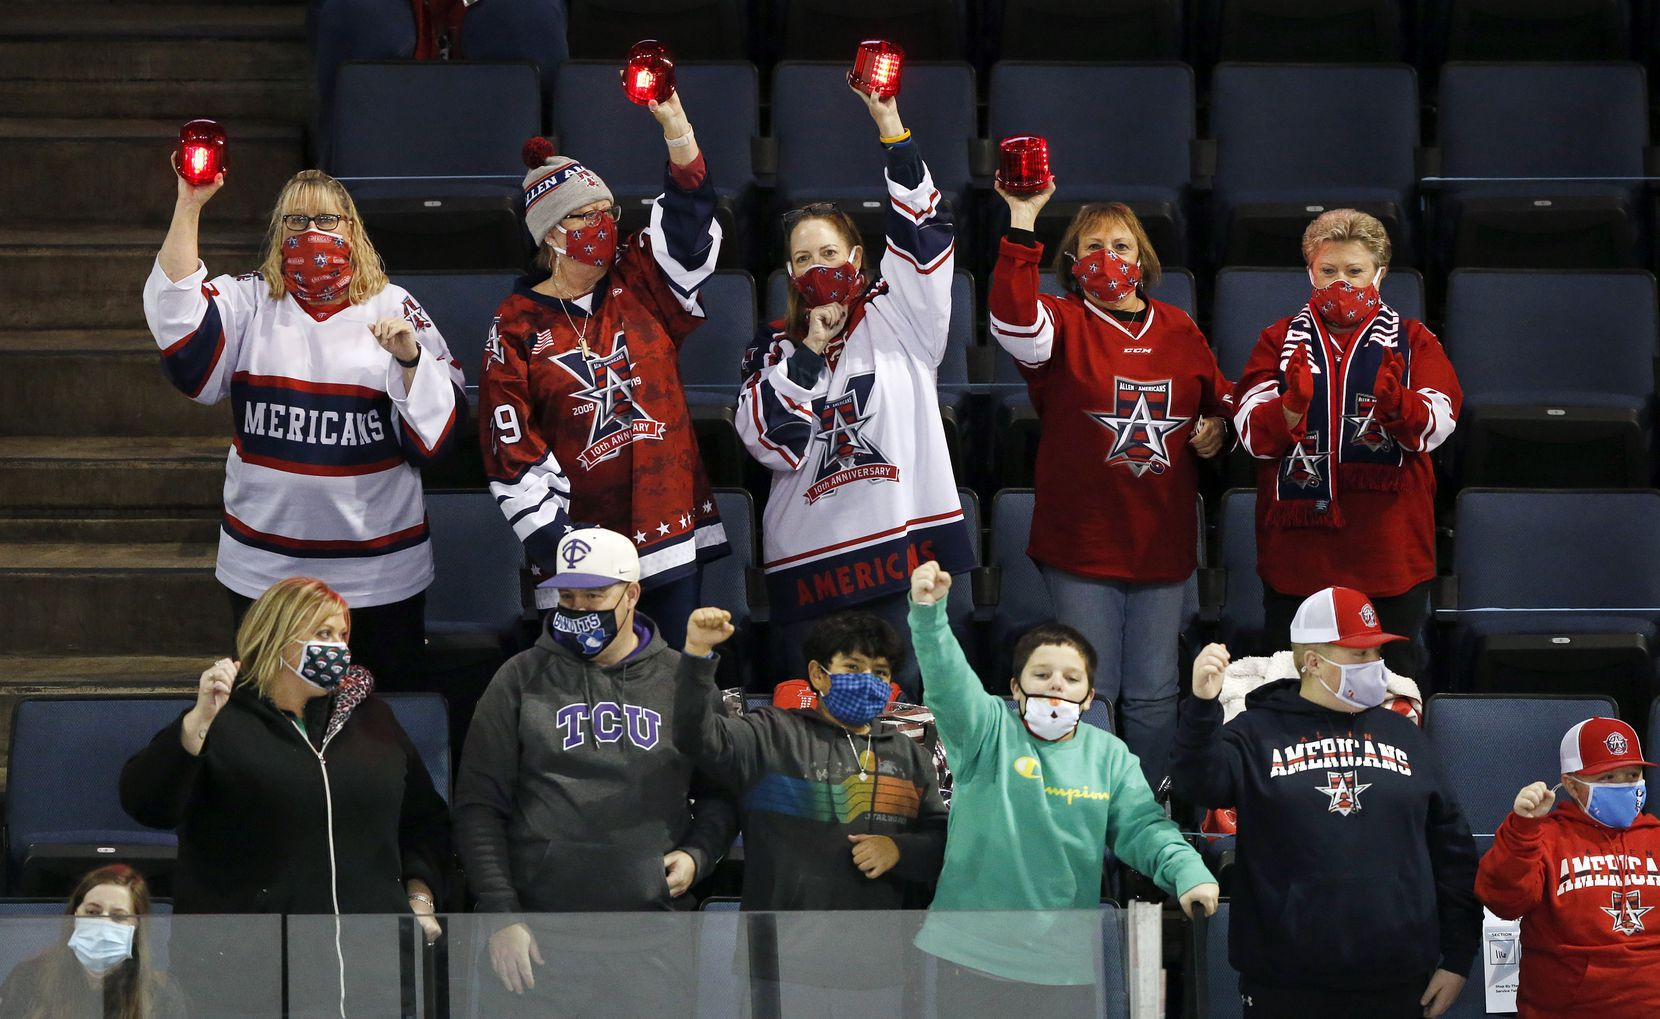 Allen Americans hockey fans celebrate a first period goal during their game against Rapid City Rush at the Allen Event Center in Allen, Texas, Friday, December 18, 2020. This is the first professional hockey game in the metroplex since March. (Tom Fox/The Dallas Morning News)